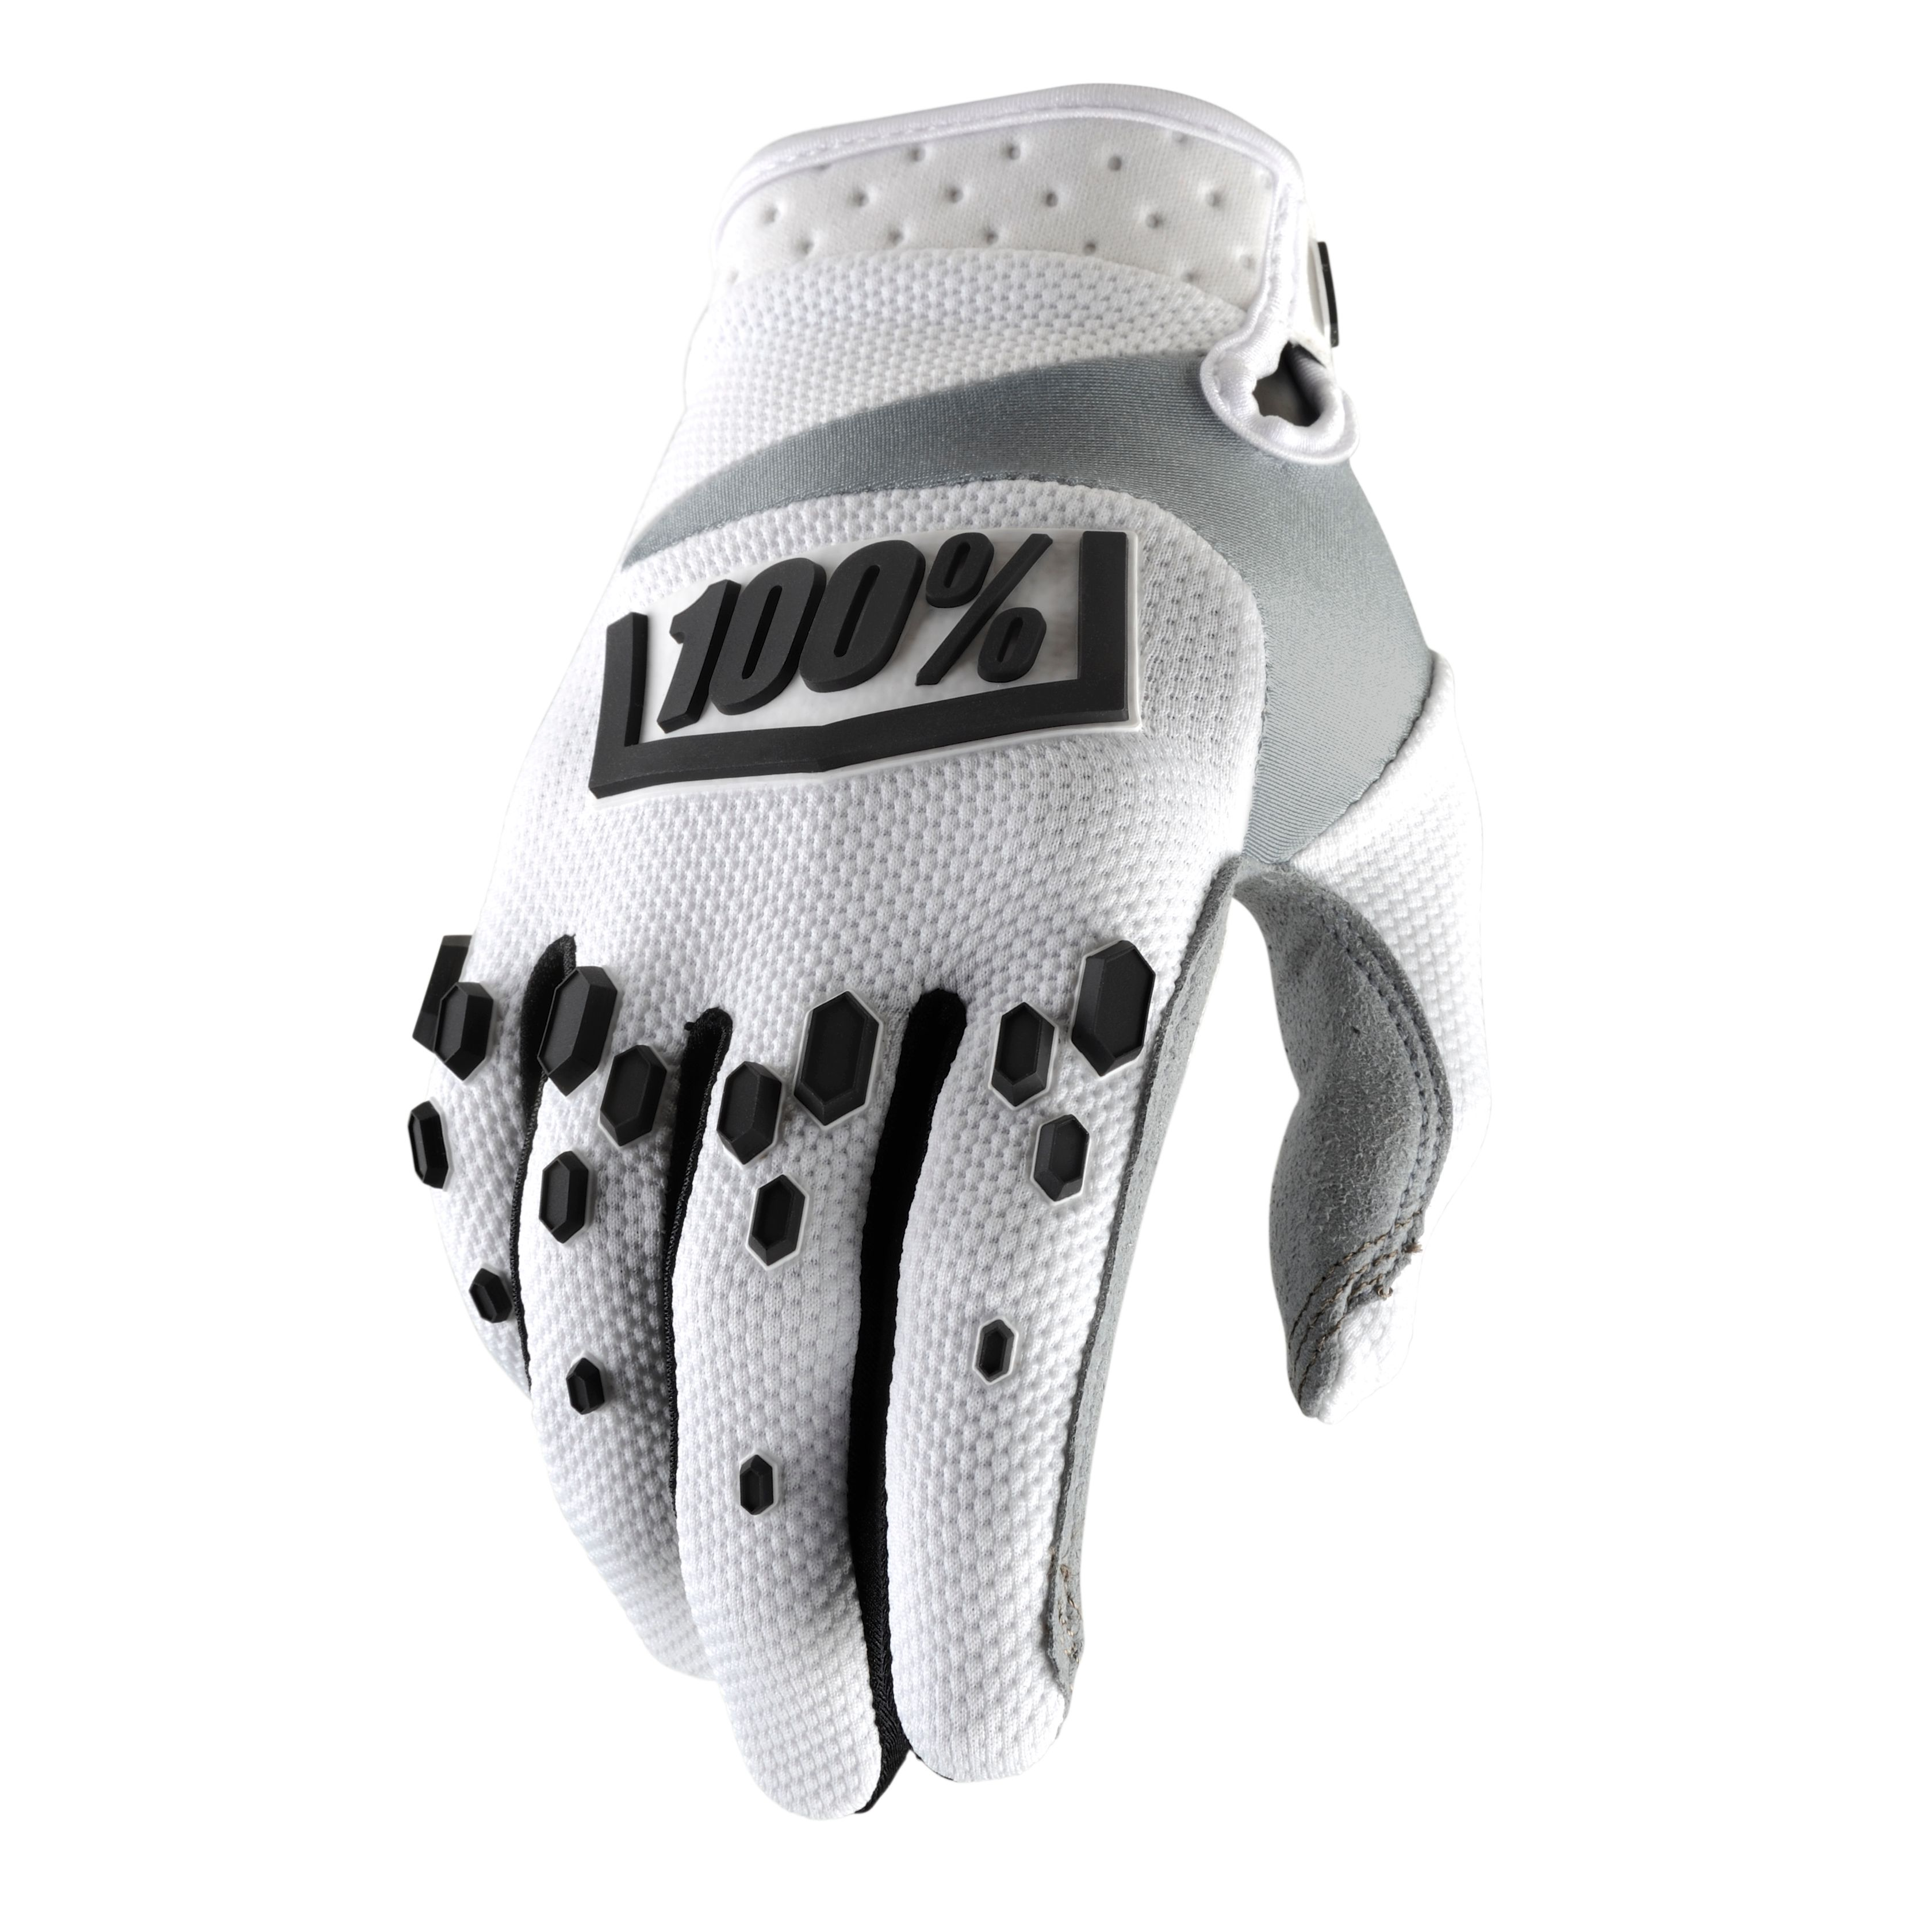 Gants Cross 100% Airmatic - Blanc/noir